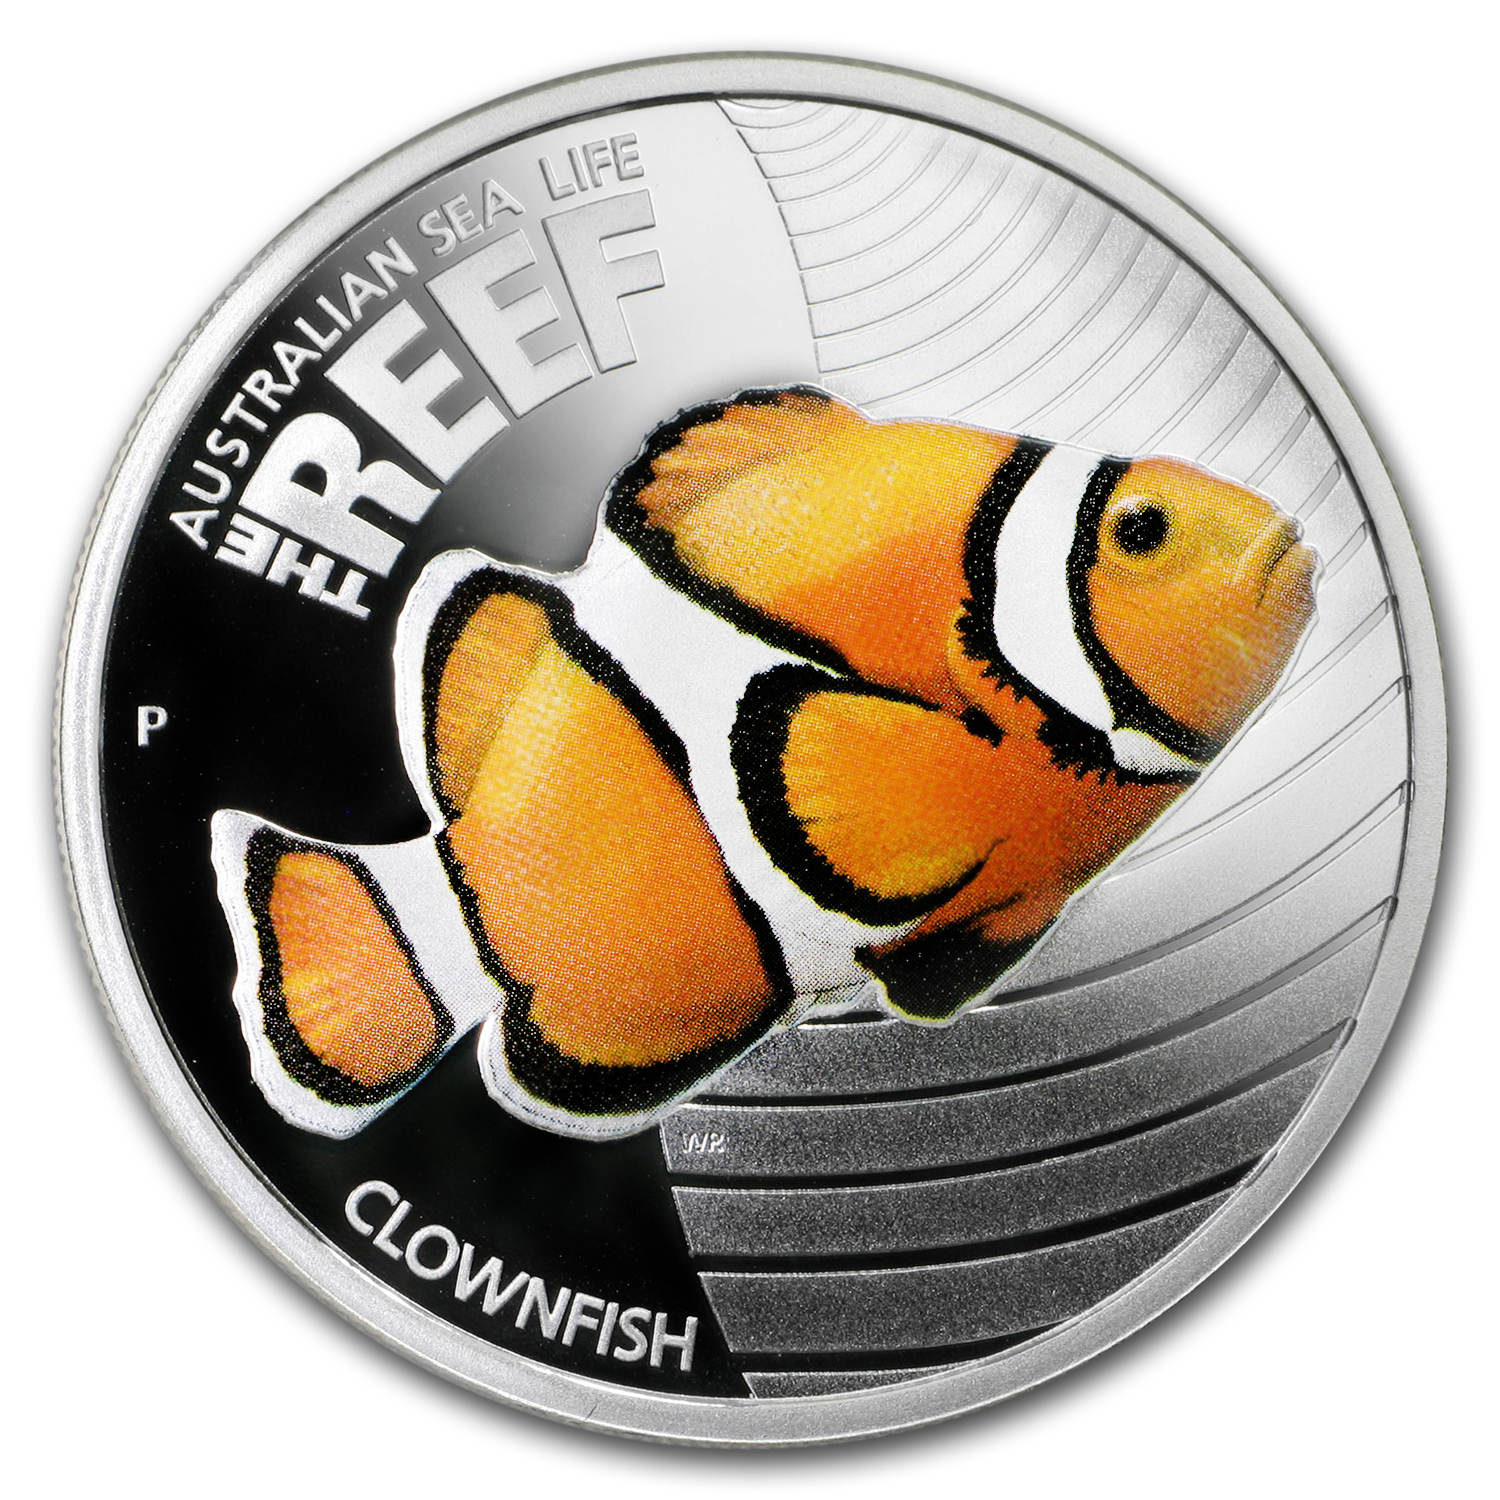 2010 Australia 1/2 oz Silver Clownfish Proof